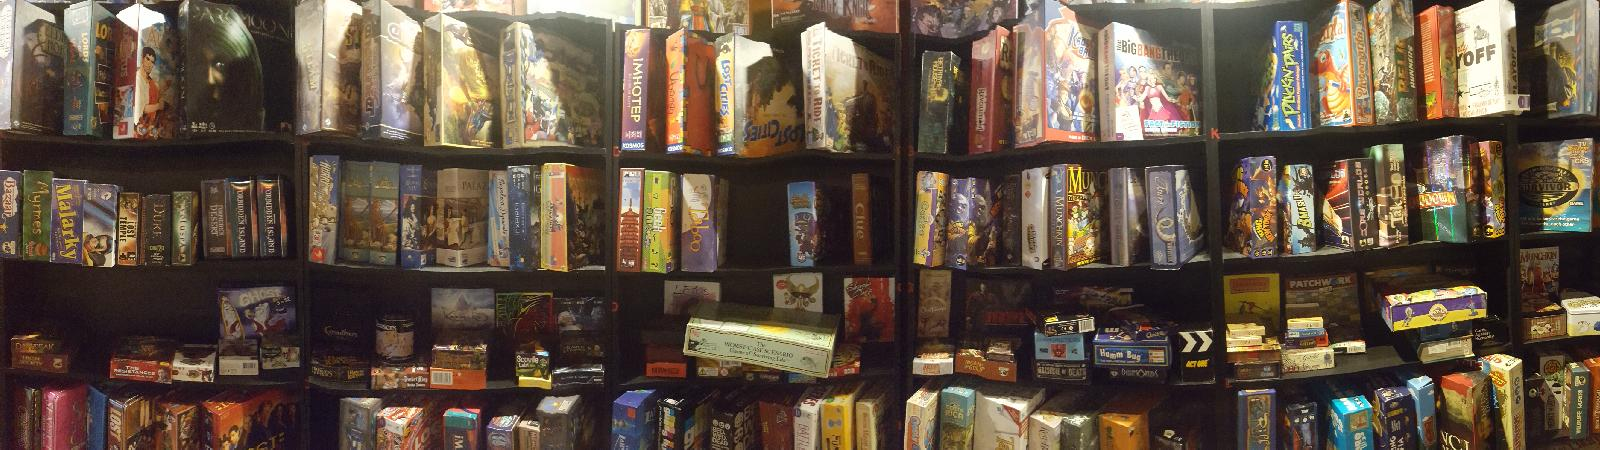 Collection Of Board Games.JPG